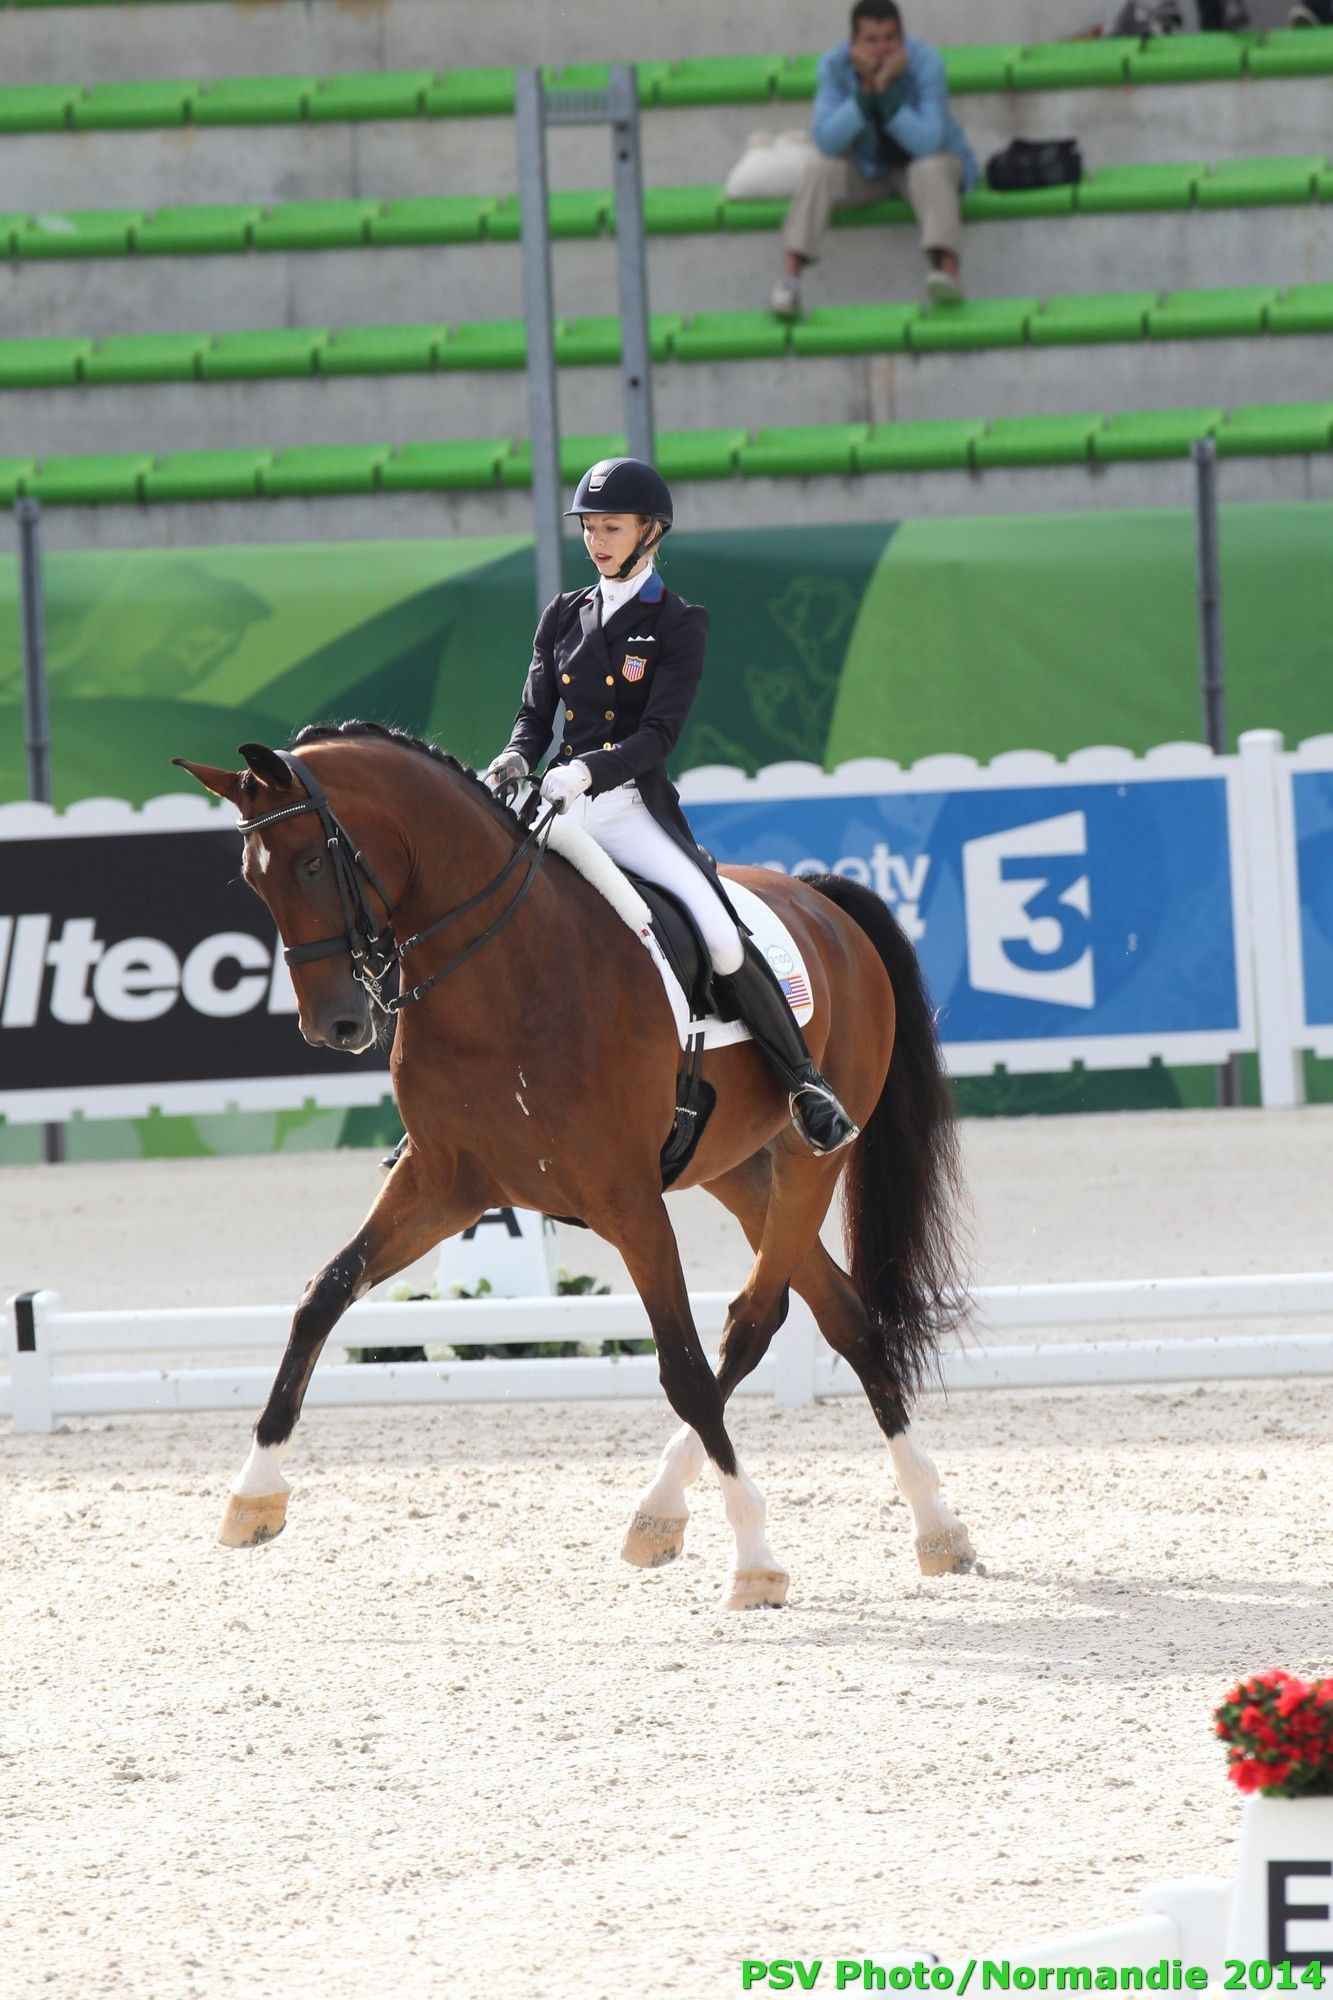 Dressage - Laura GRAVES - VERDADES - USA - August 26th - Copyright : PSV Photo